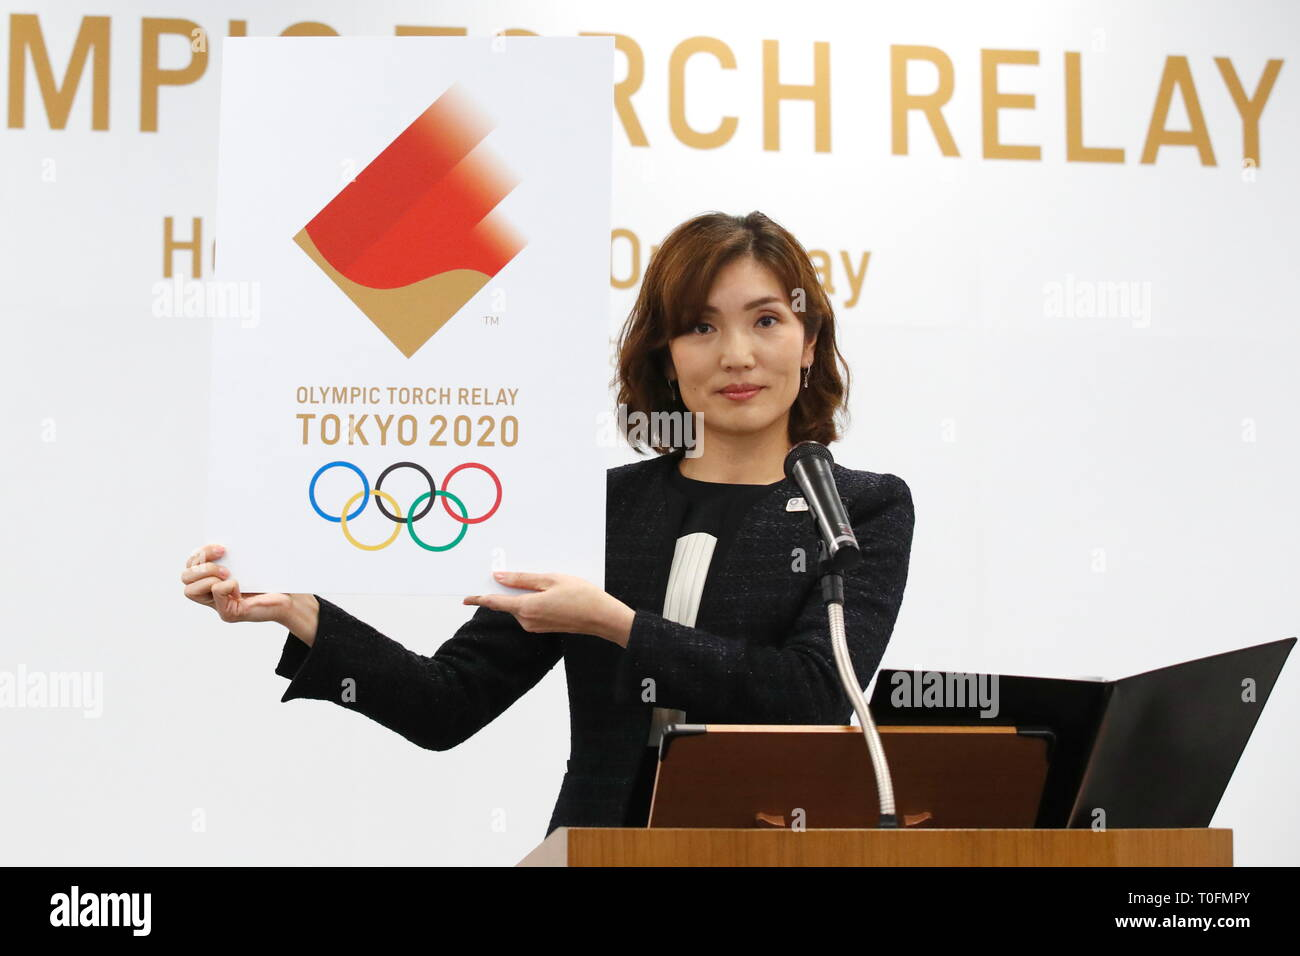 Tokyo, Japan. 20th Mar, 2019. Miho Takeda, March 20, 2019 : The Tokyo 2020 Olympic Games Organizing Committee holds a Torch Relay Press Conference to announc the design and emblem for the Tokyo 2020 Olympic Torch in Tokyo, Japan, on Wednesday, March 20, 2019. The Olympic flame is scheduled to arrive at Japan's Air Self-Defense Force Matsushima base in Miyagi prefecture from Athens, Greece, in one year on March 20. 2020. Credit: Sho Tamura/AFLO SPORT/Alamy Live News - Stock Image